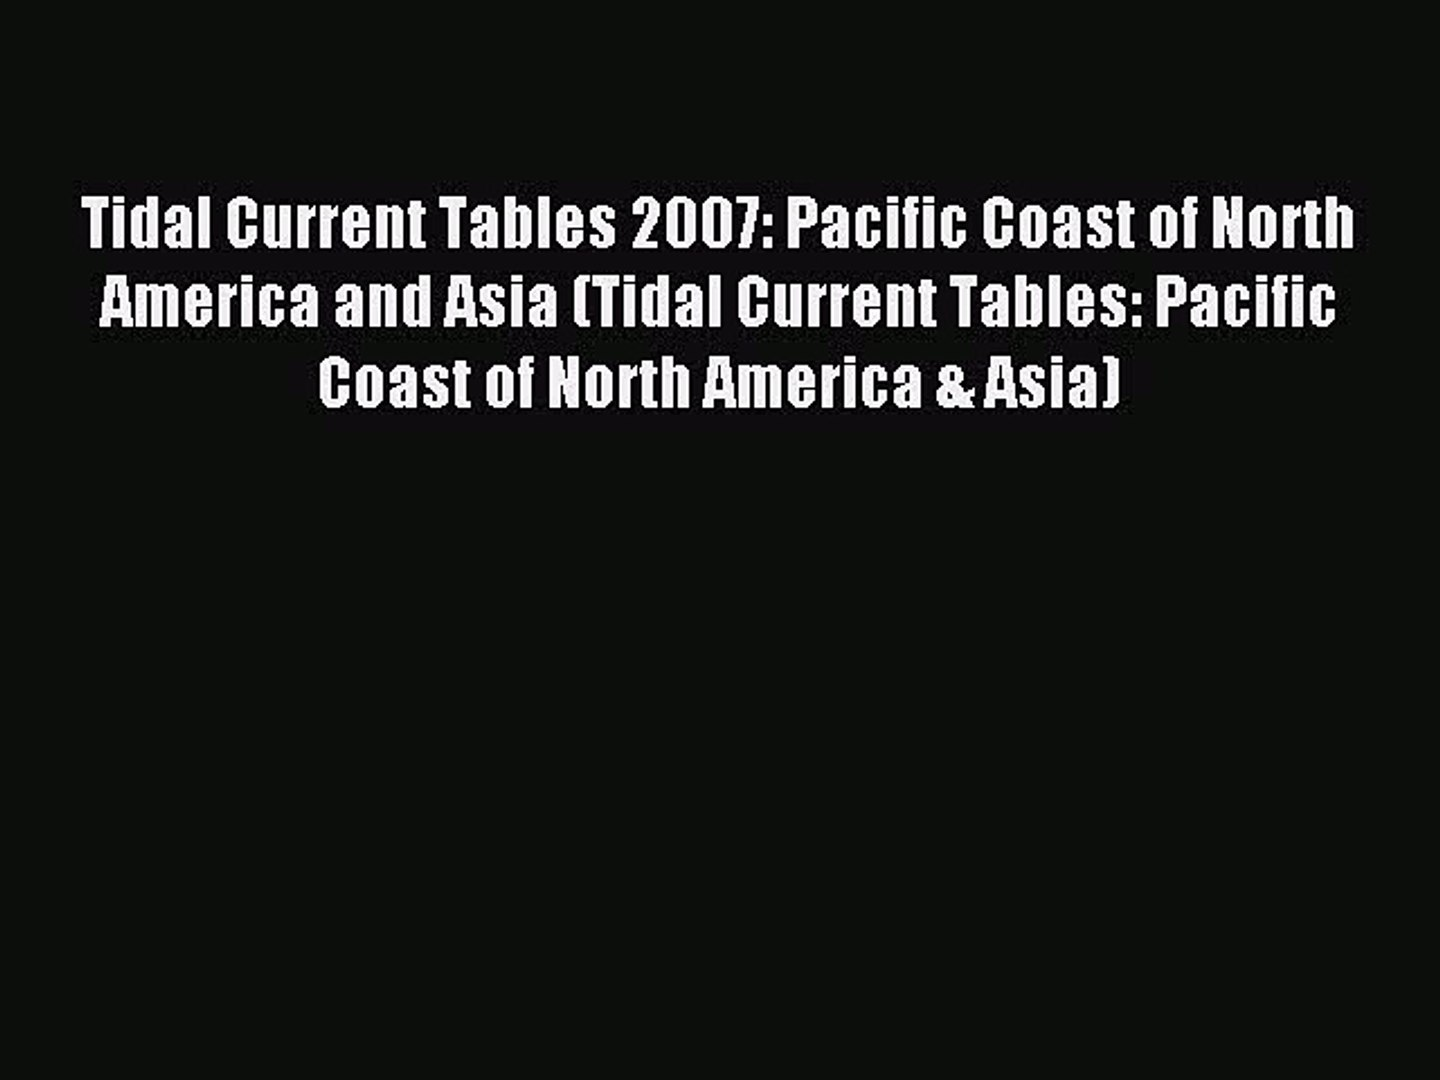 Read Tidal Current Tables 2007: Pacific Coast of North America and Asia (Tidal Current Tables: